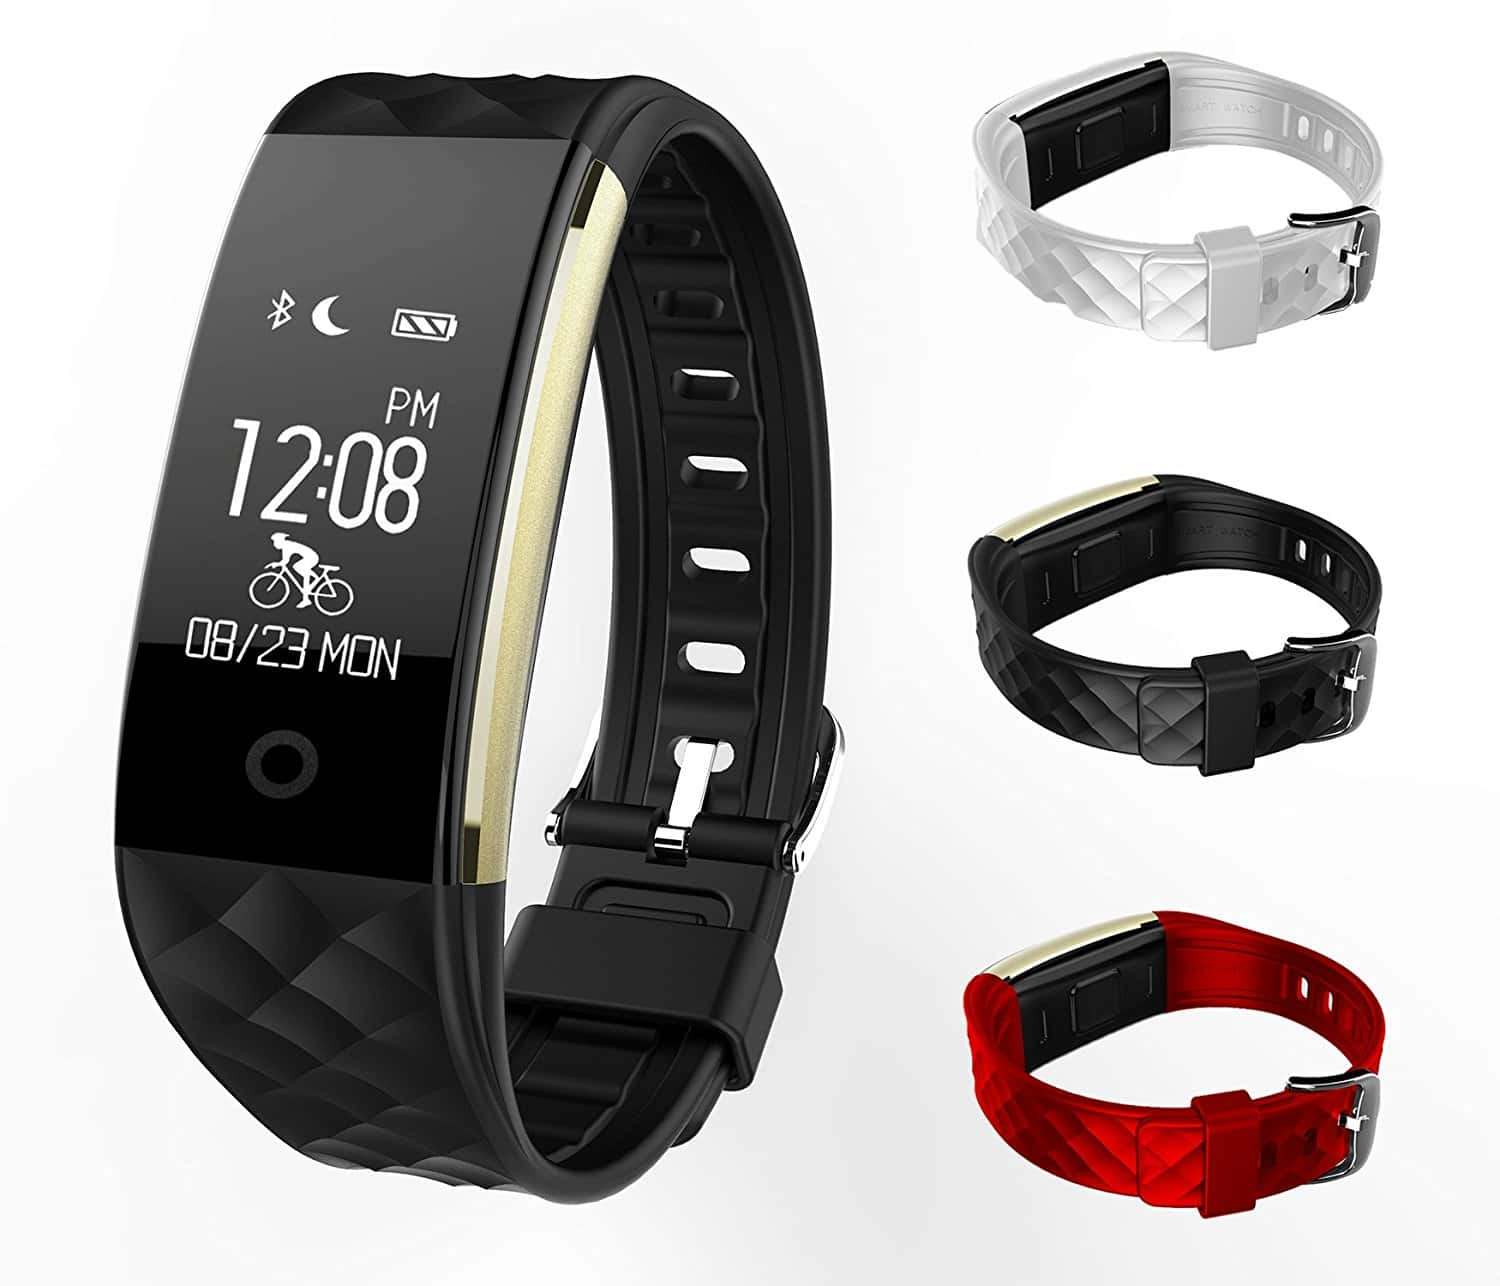 waterproof hiking fitness bracelet phone smart smartwatch wearable sports ios from watches in devices for watch item android tracker